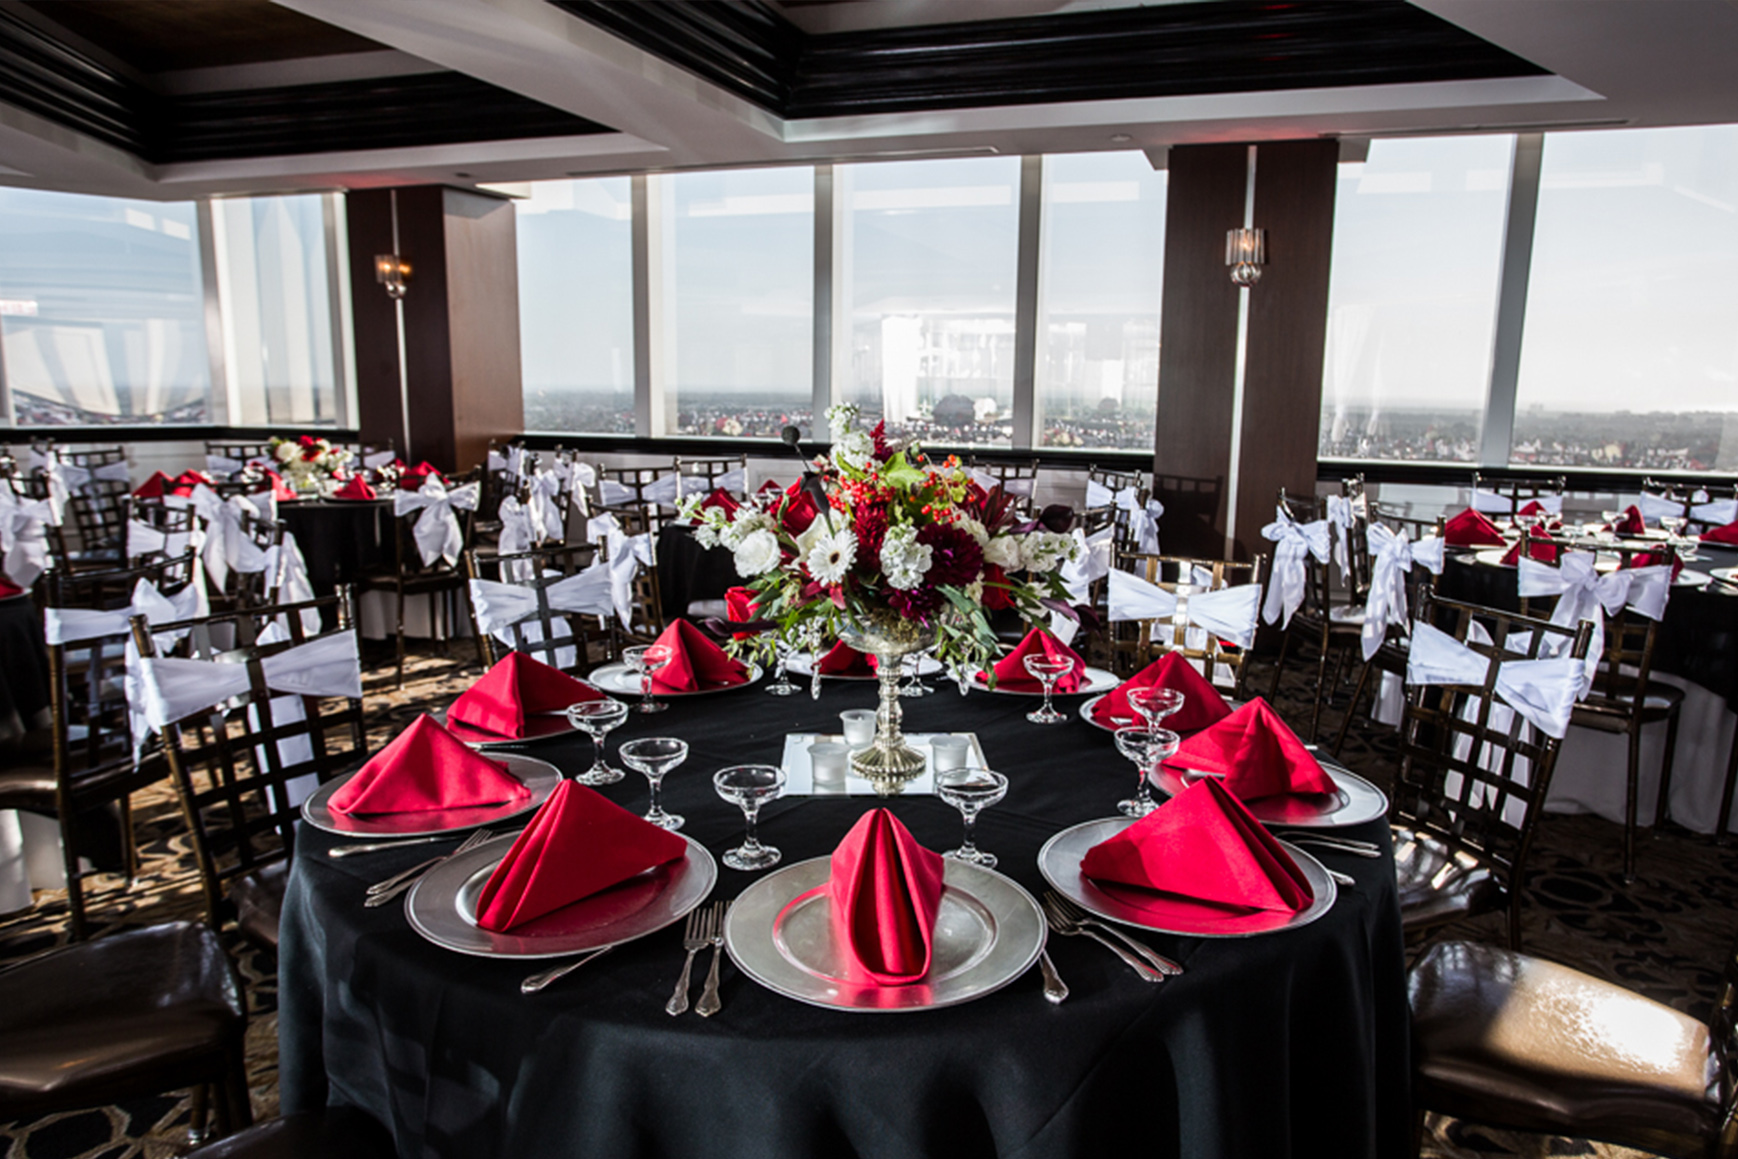 Pacific View Tower Club - Oxnard, California - Ventura County - Bride and Groom - Wedgewood Weddings